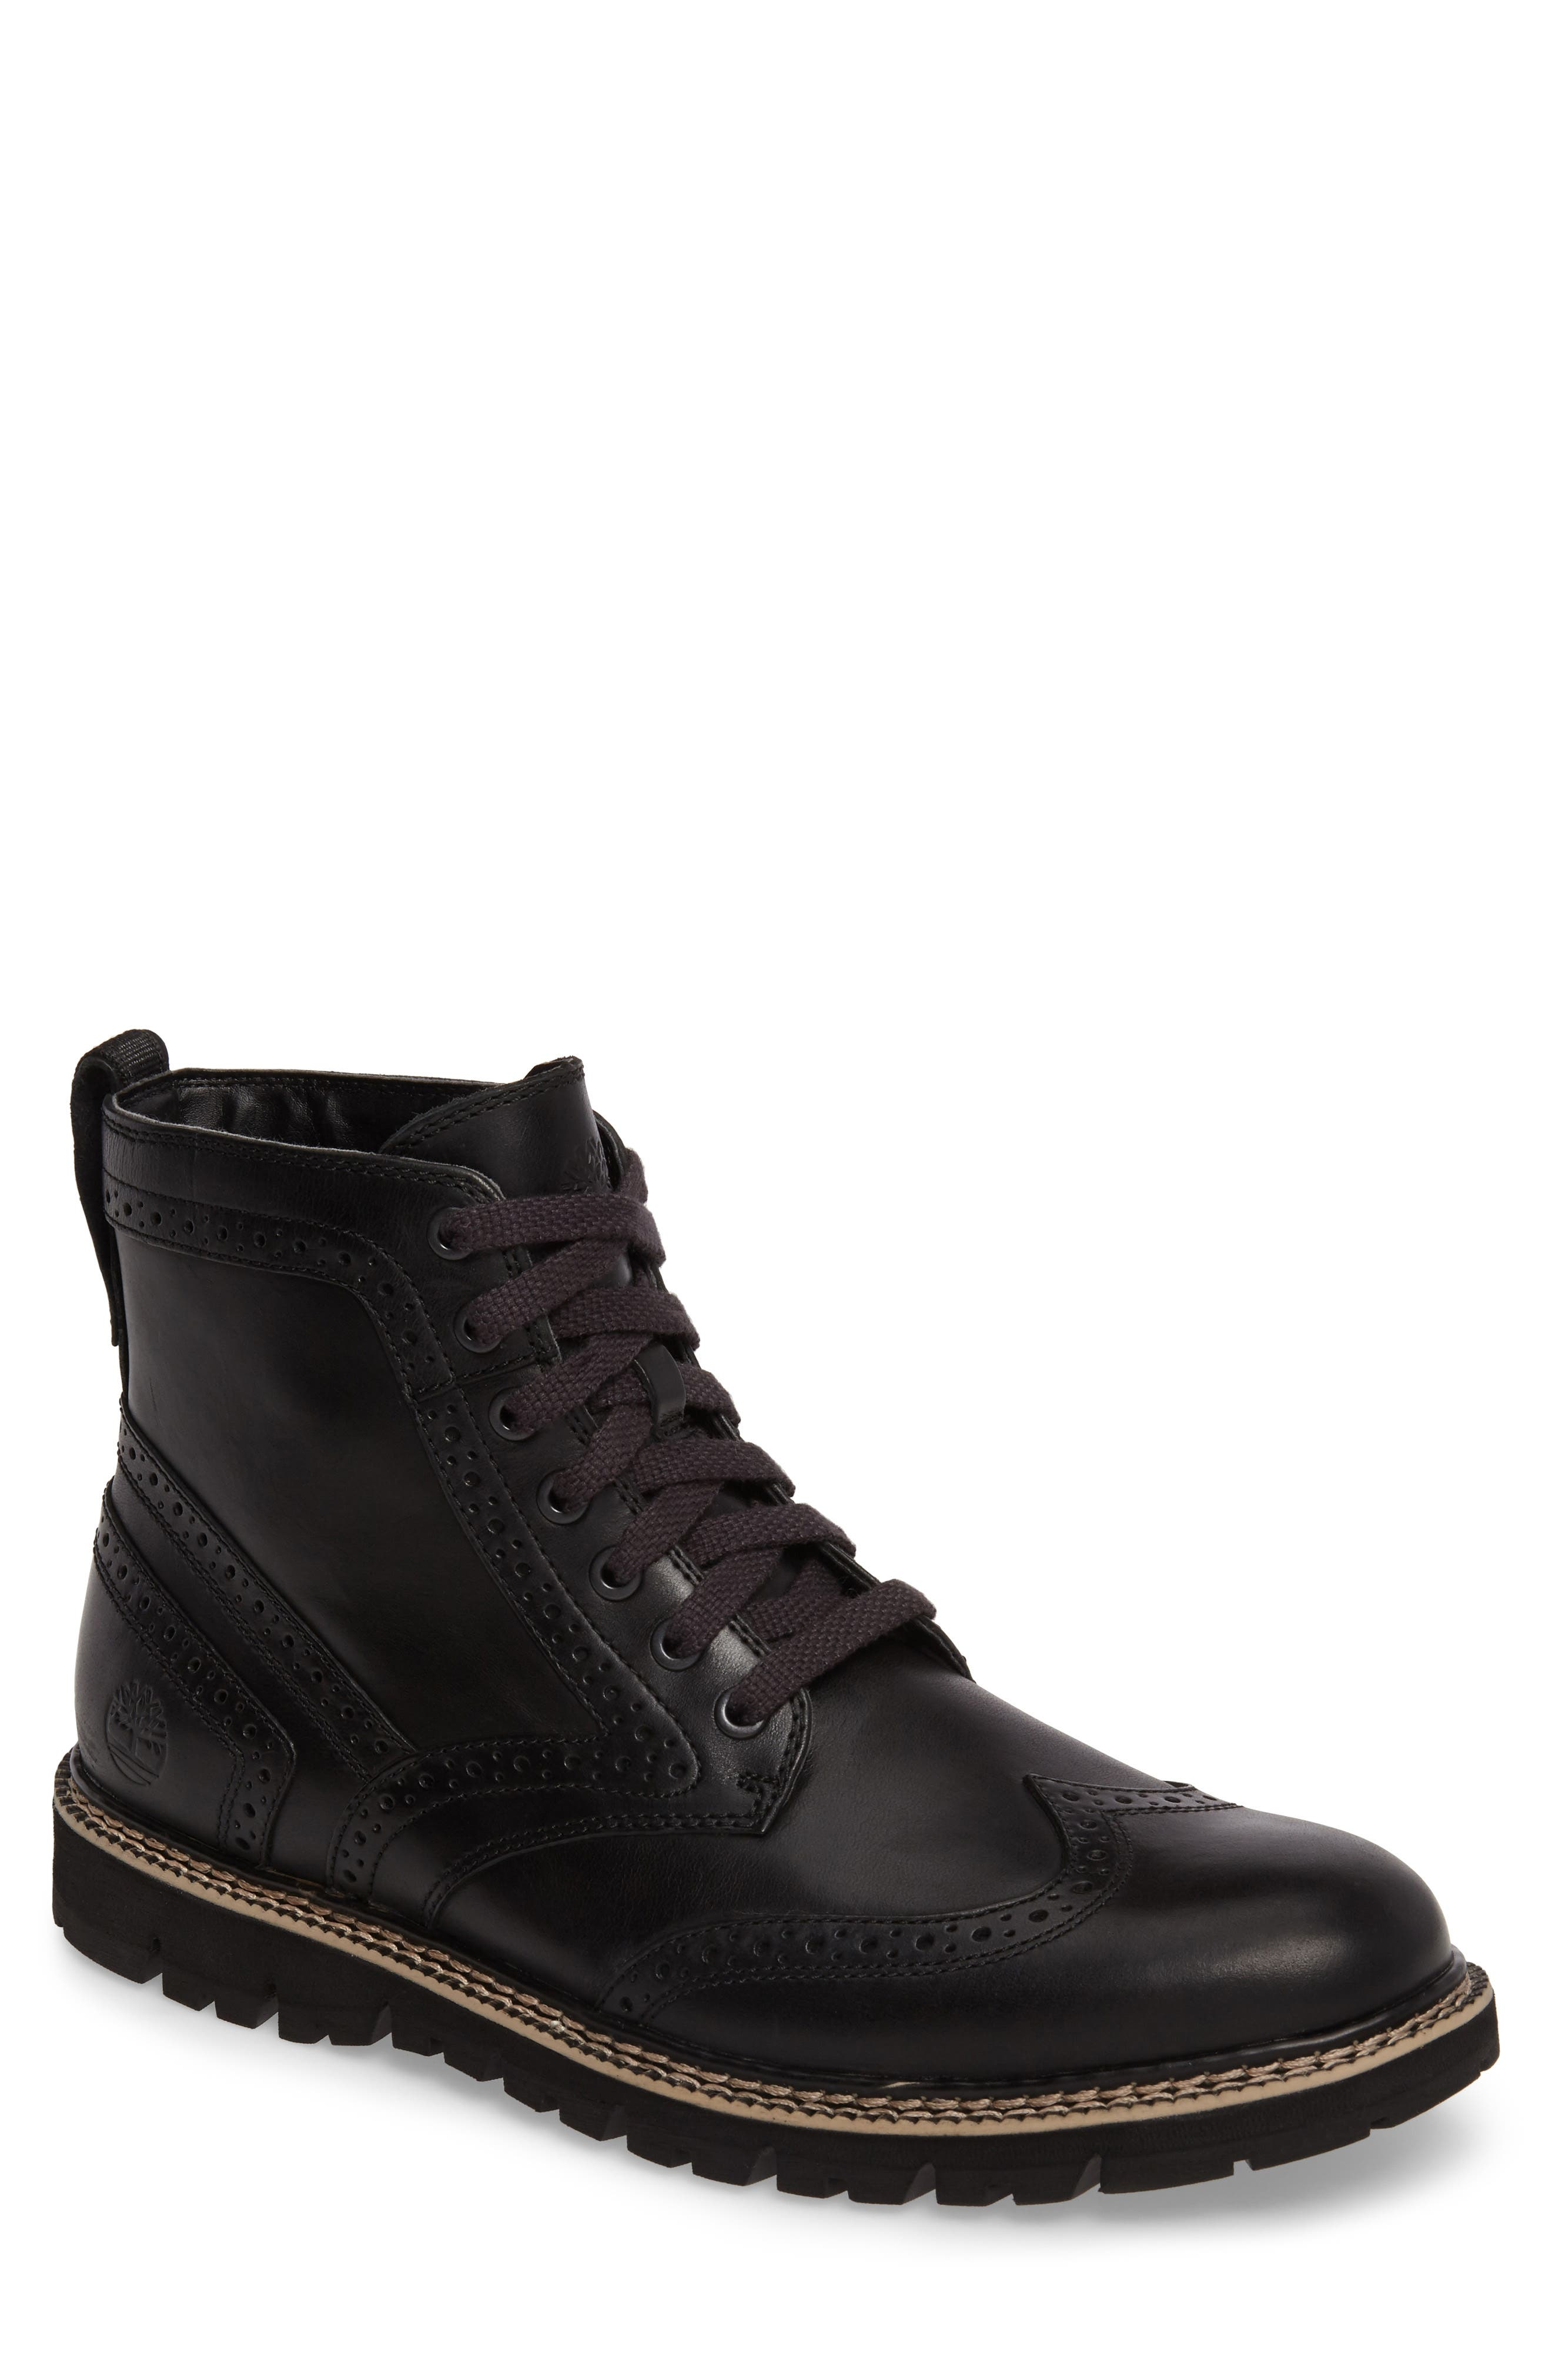 Britton Hill Wingtip Boot,                         Main,                         color,